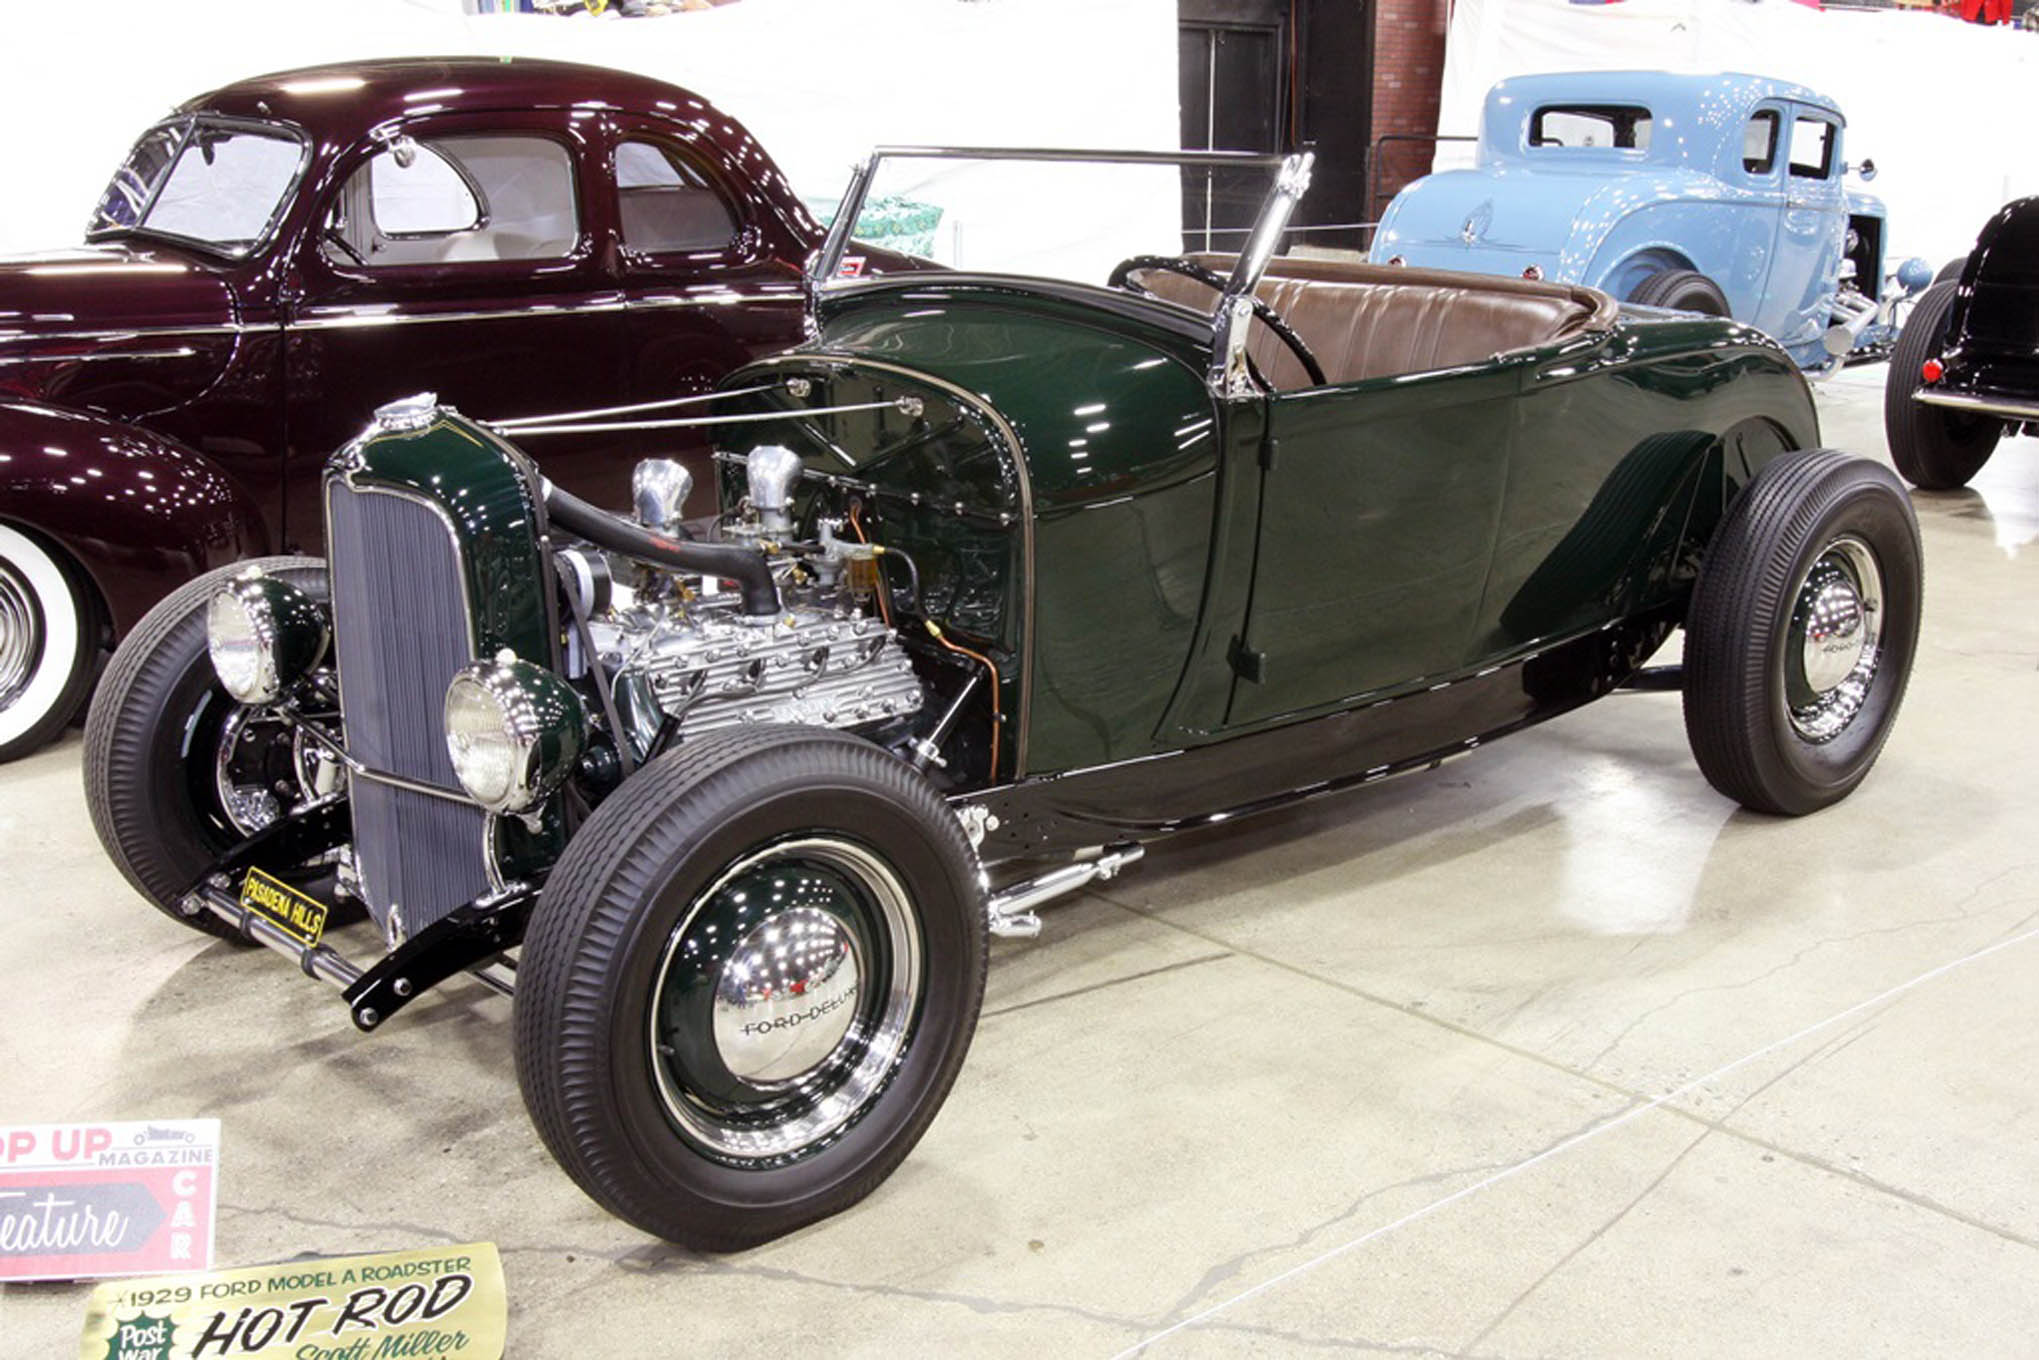 Running his Ford Model A roadster without a hood lets Scott Miler 0of Pasadena show off the Evans Flathead. The original 1929 body rides on original 1932 'rails. Other traditional components include a Halibrand Culver City quick-change, and a Packard dash.